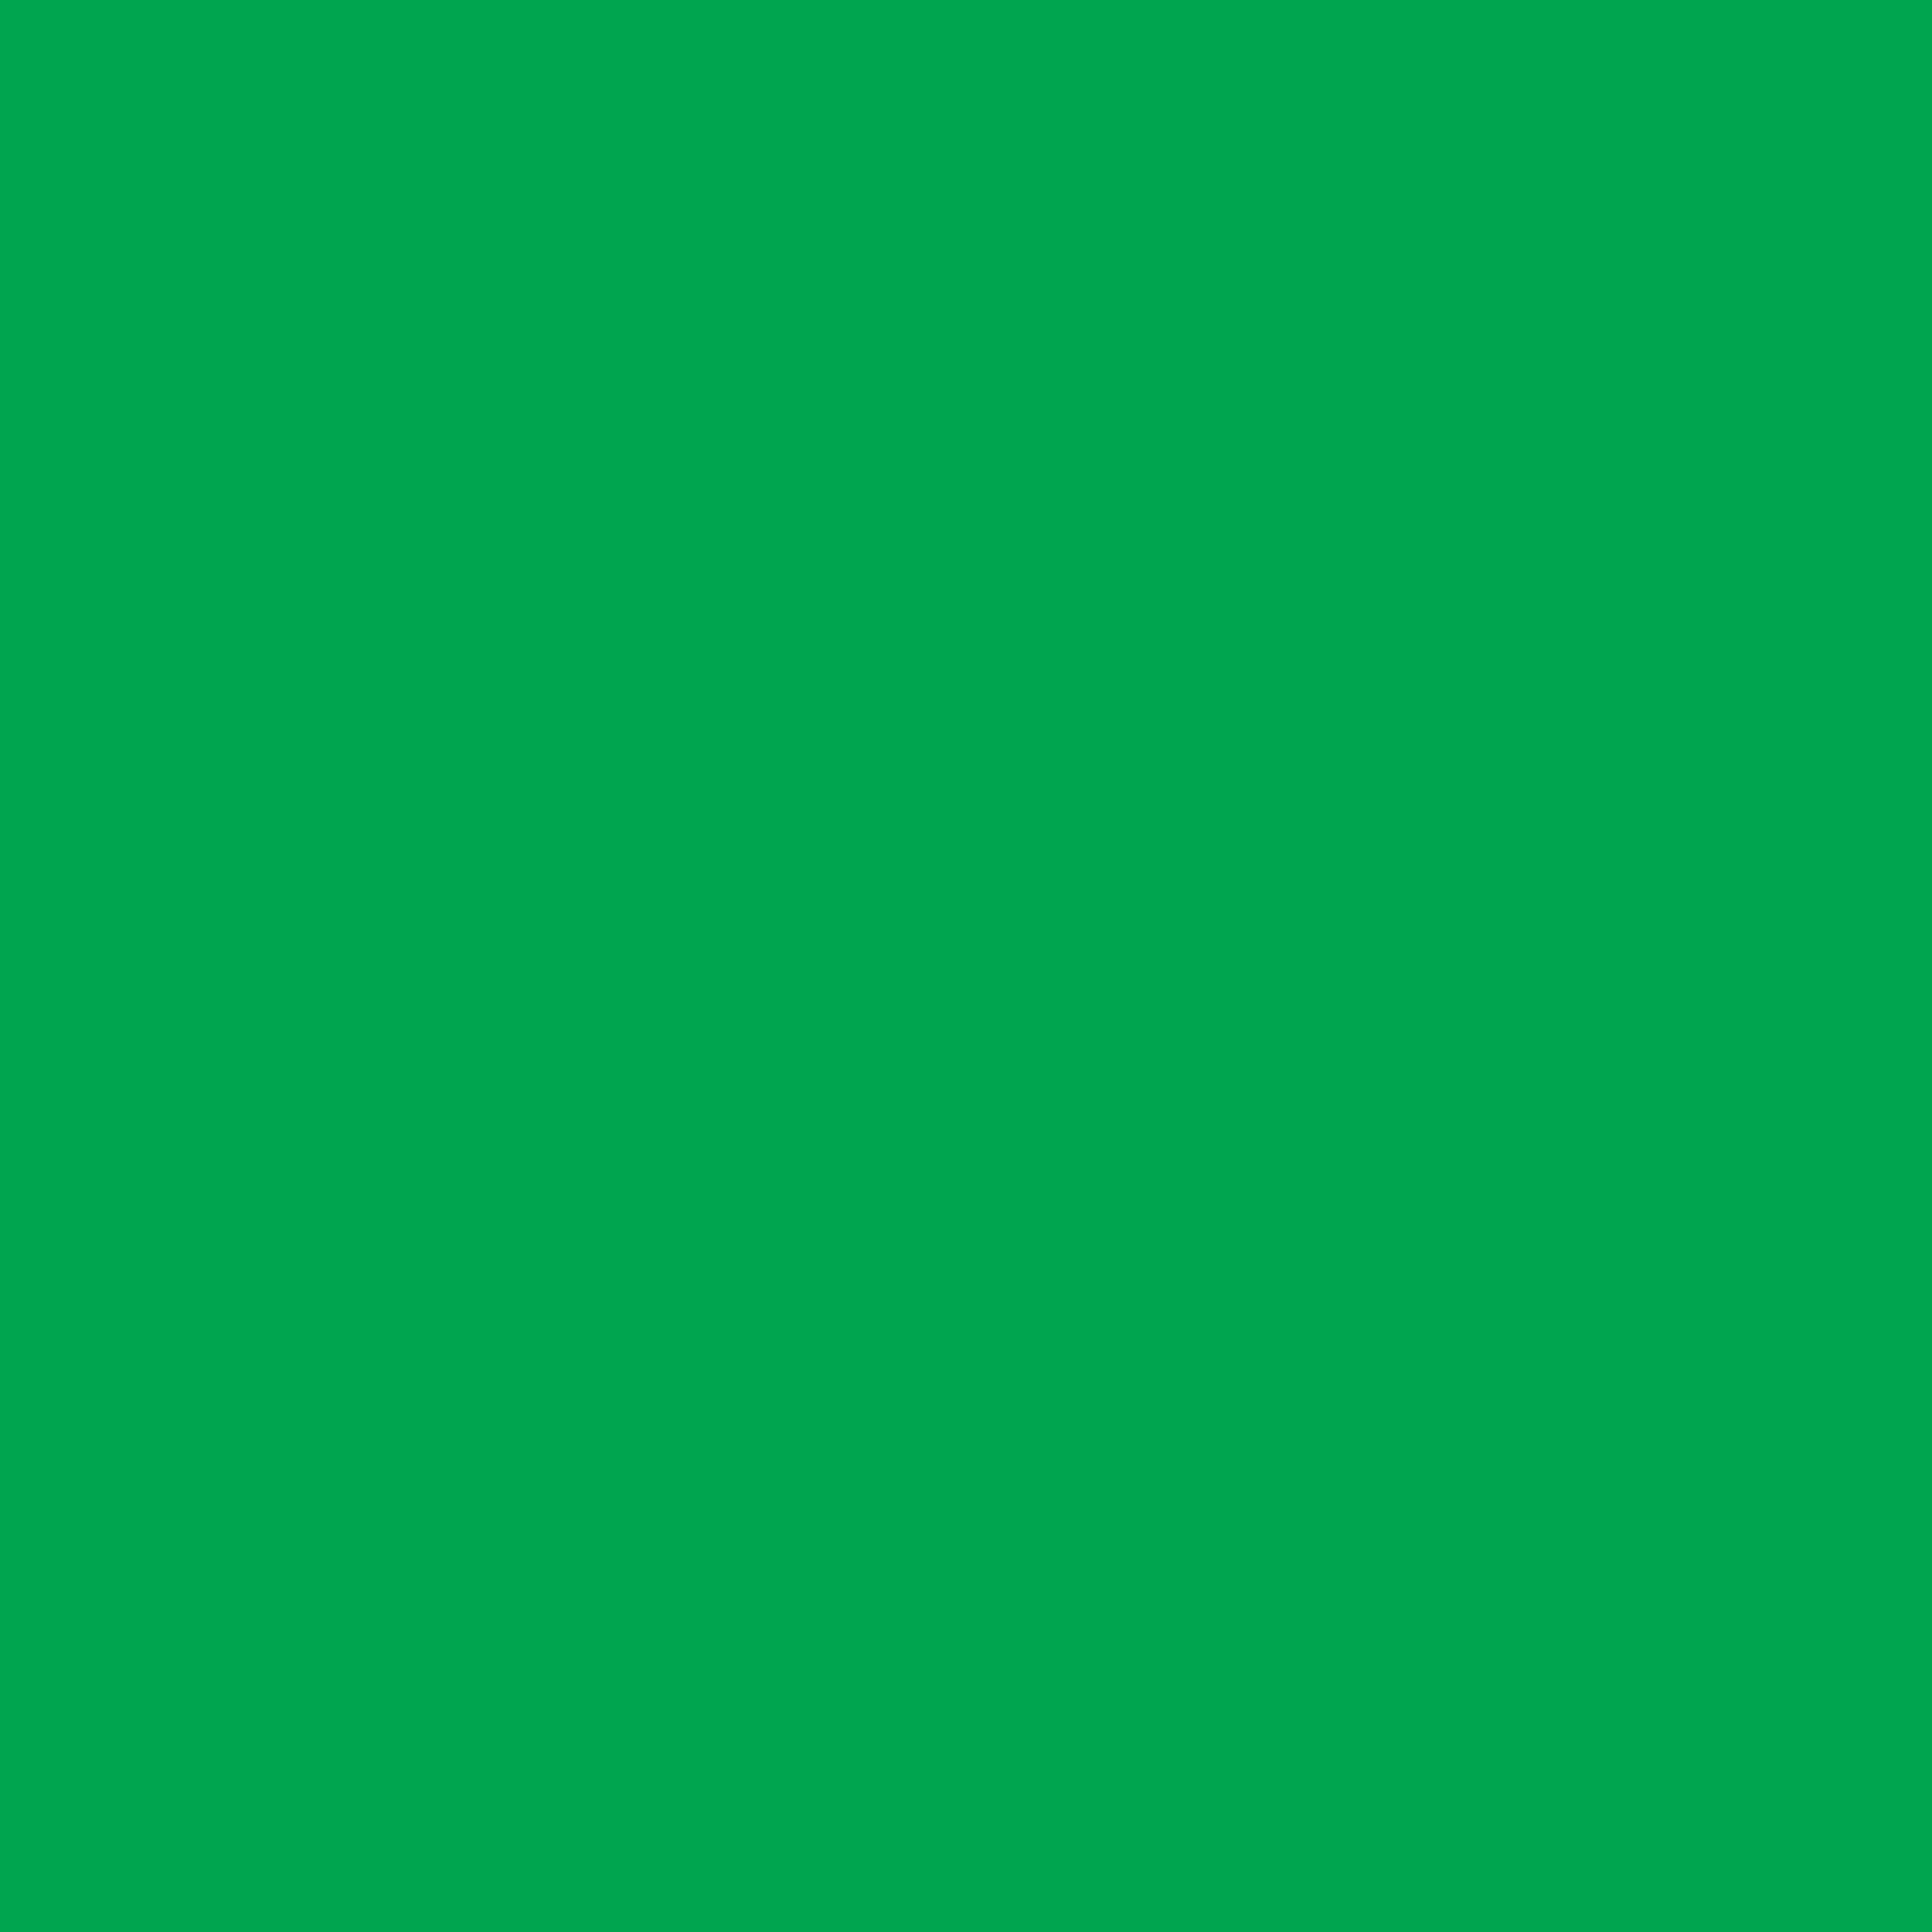 3600x3600 Green Pigment Solid Color Background